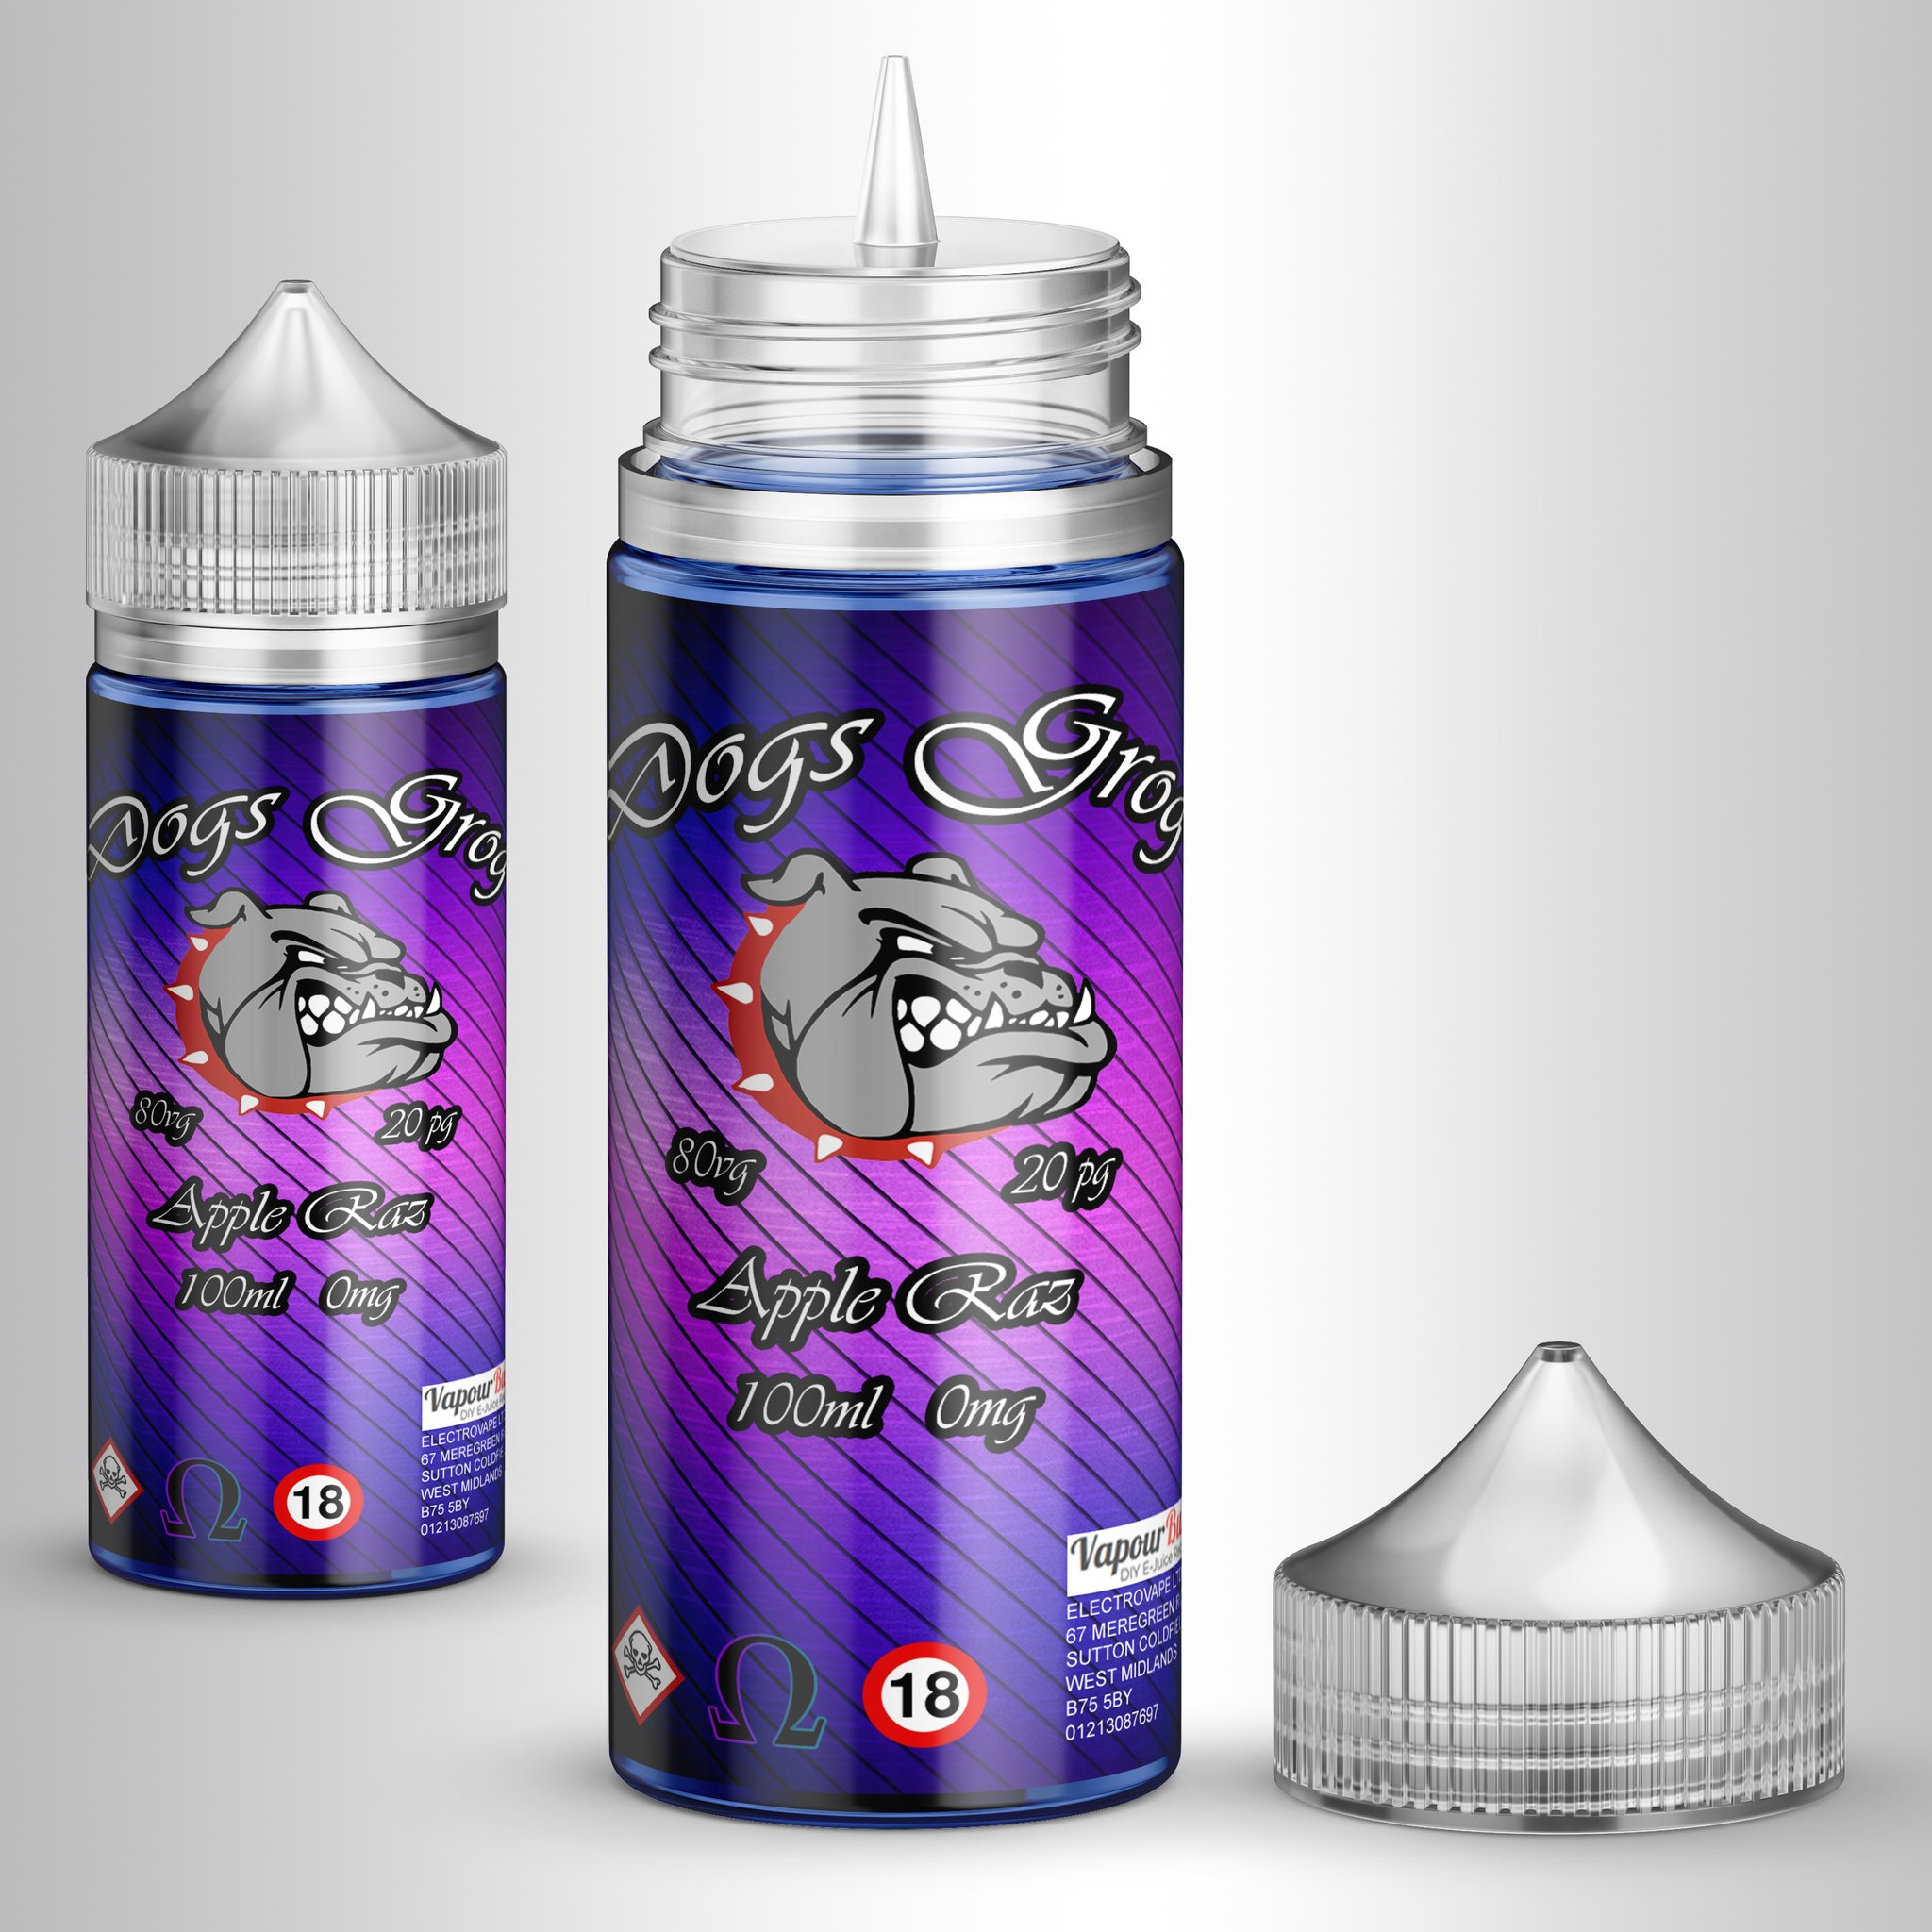 Discount code for 10% off  on All E-Liquids at Vape